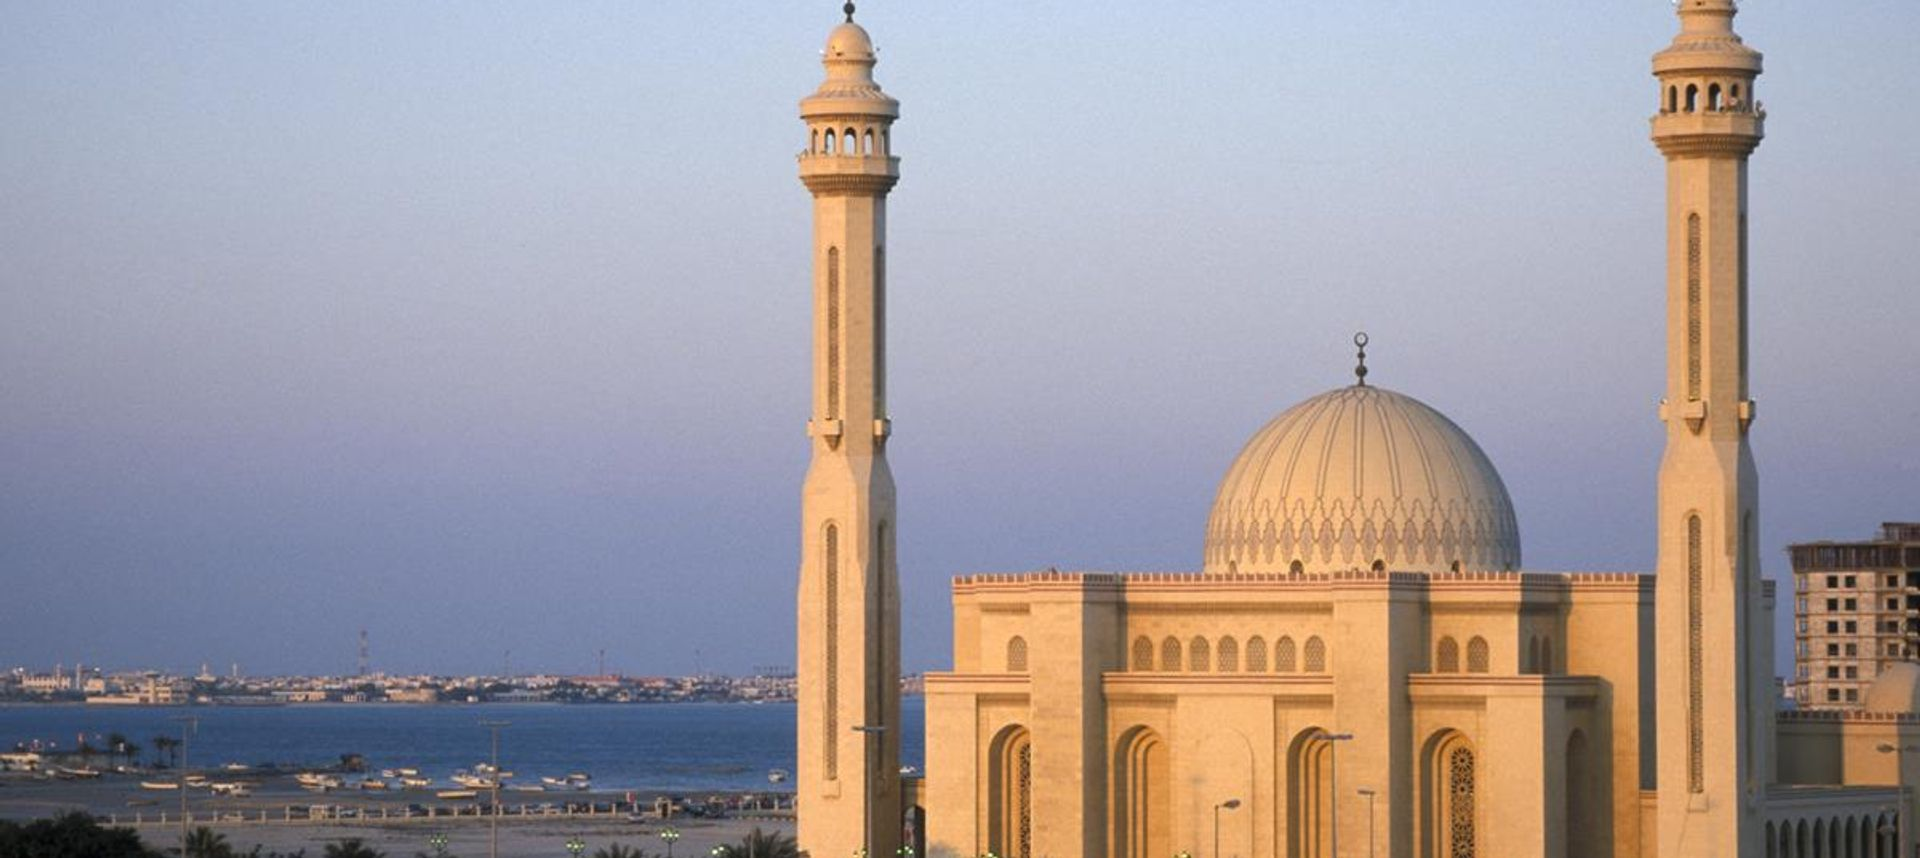 Sunset at the grand mosque in Bahrain (dreamstime.com).